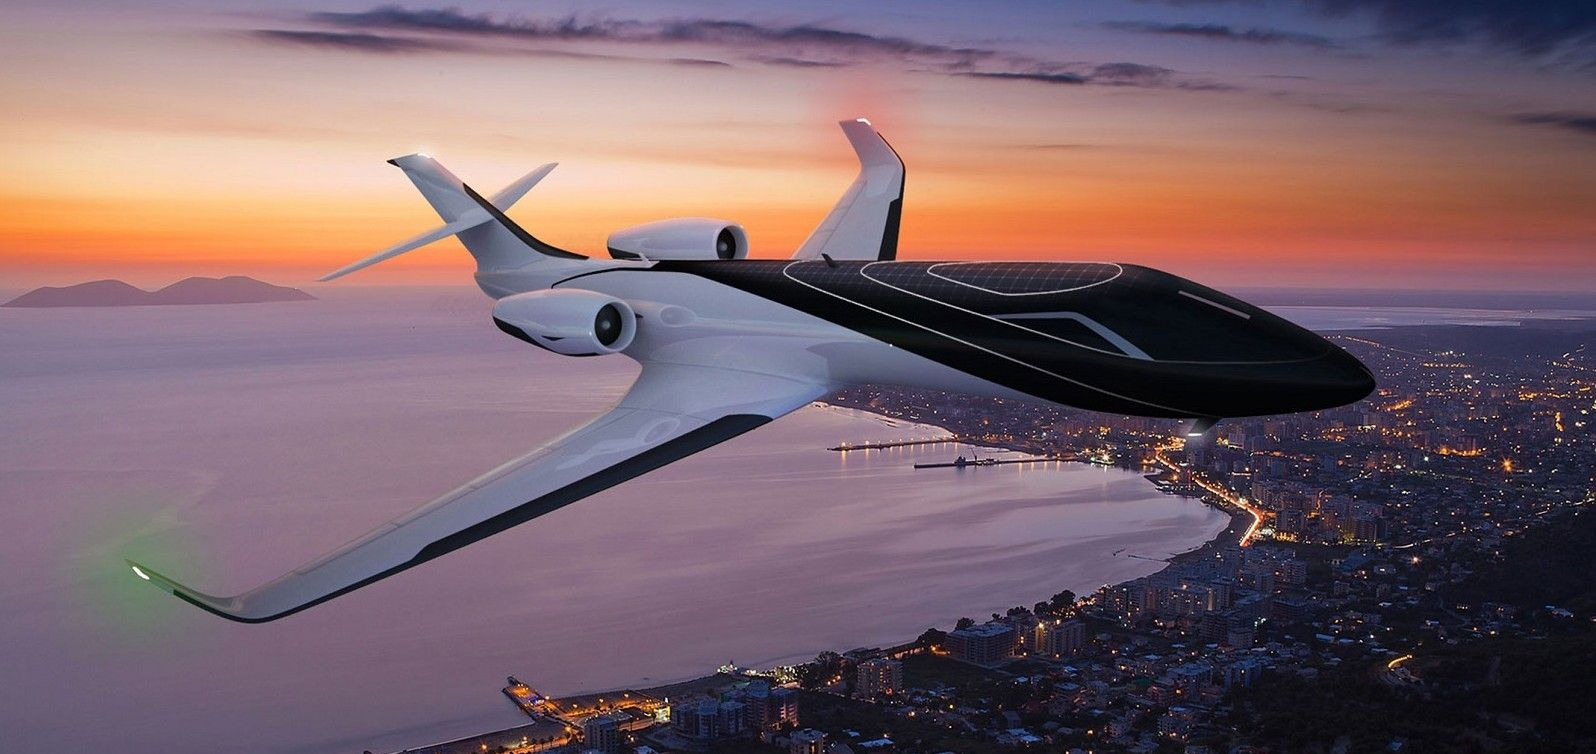 Most Luxurious Private Jet 10 most luxurious private jets in the world ...